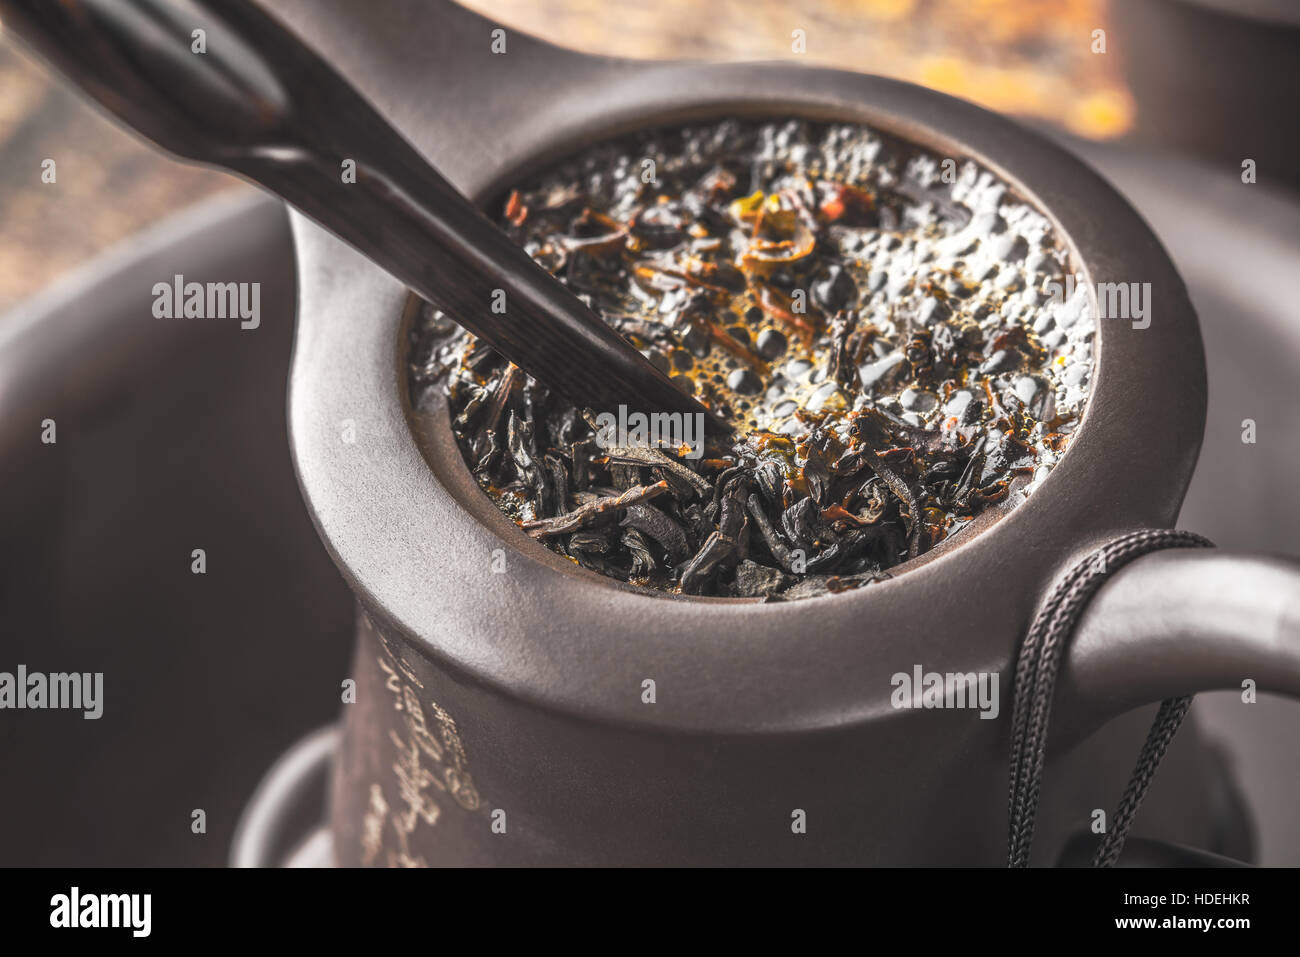 Brewing tea in the Chinese teapot - Stock Image